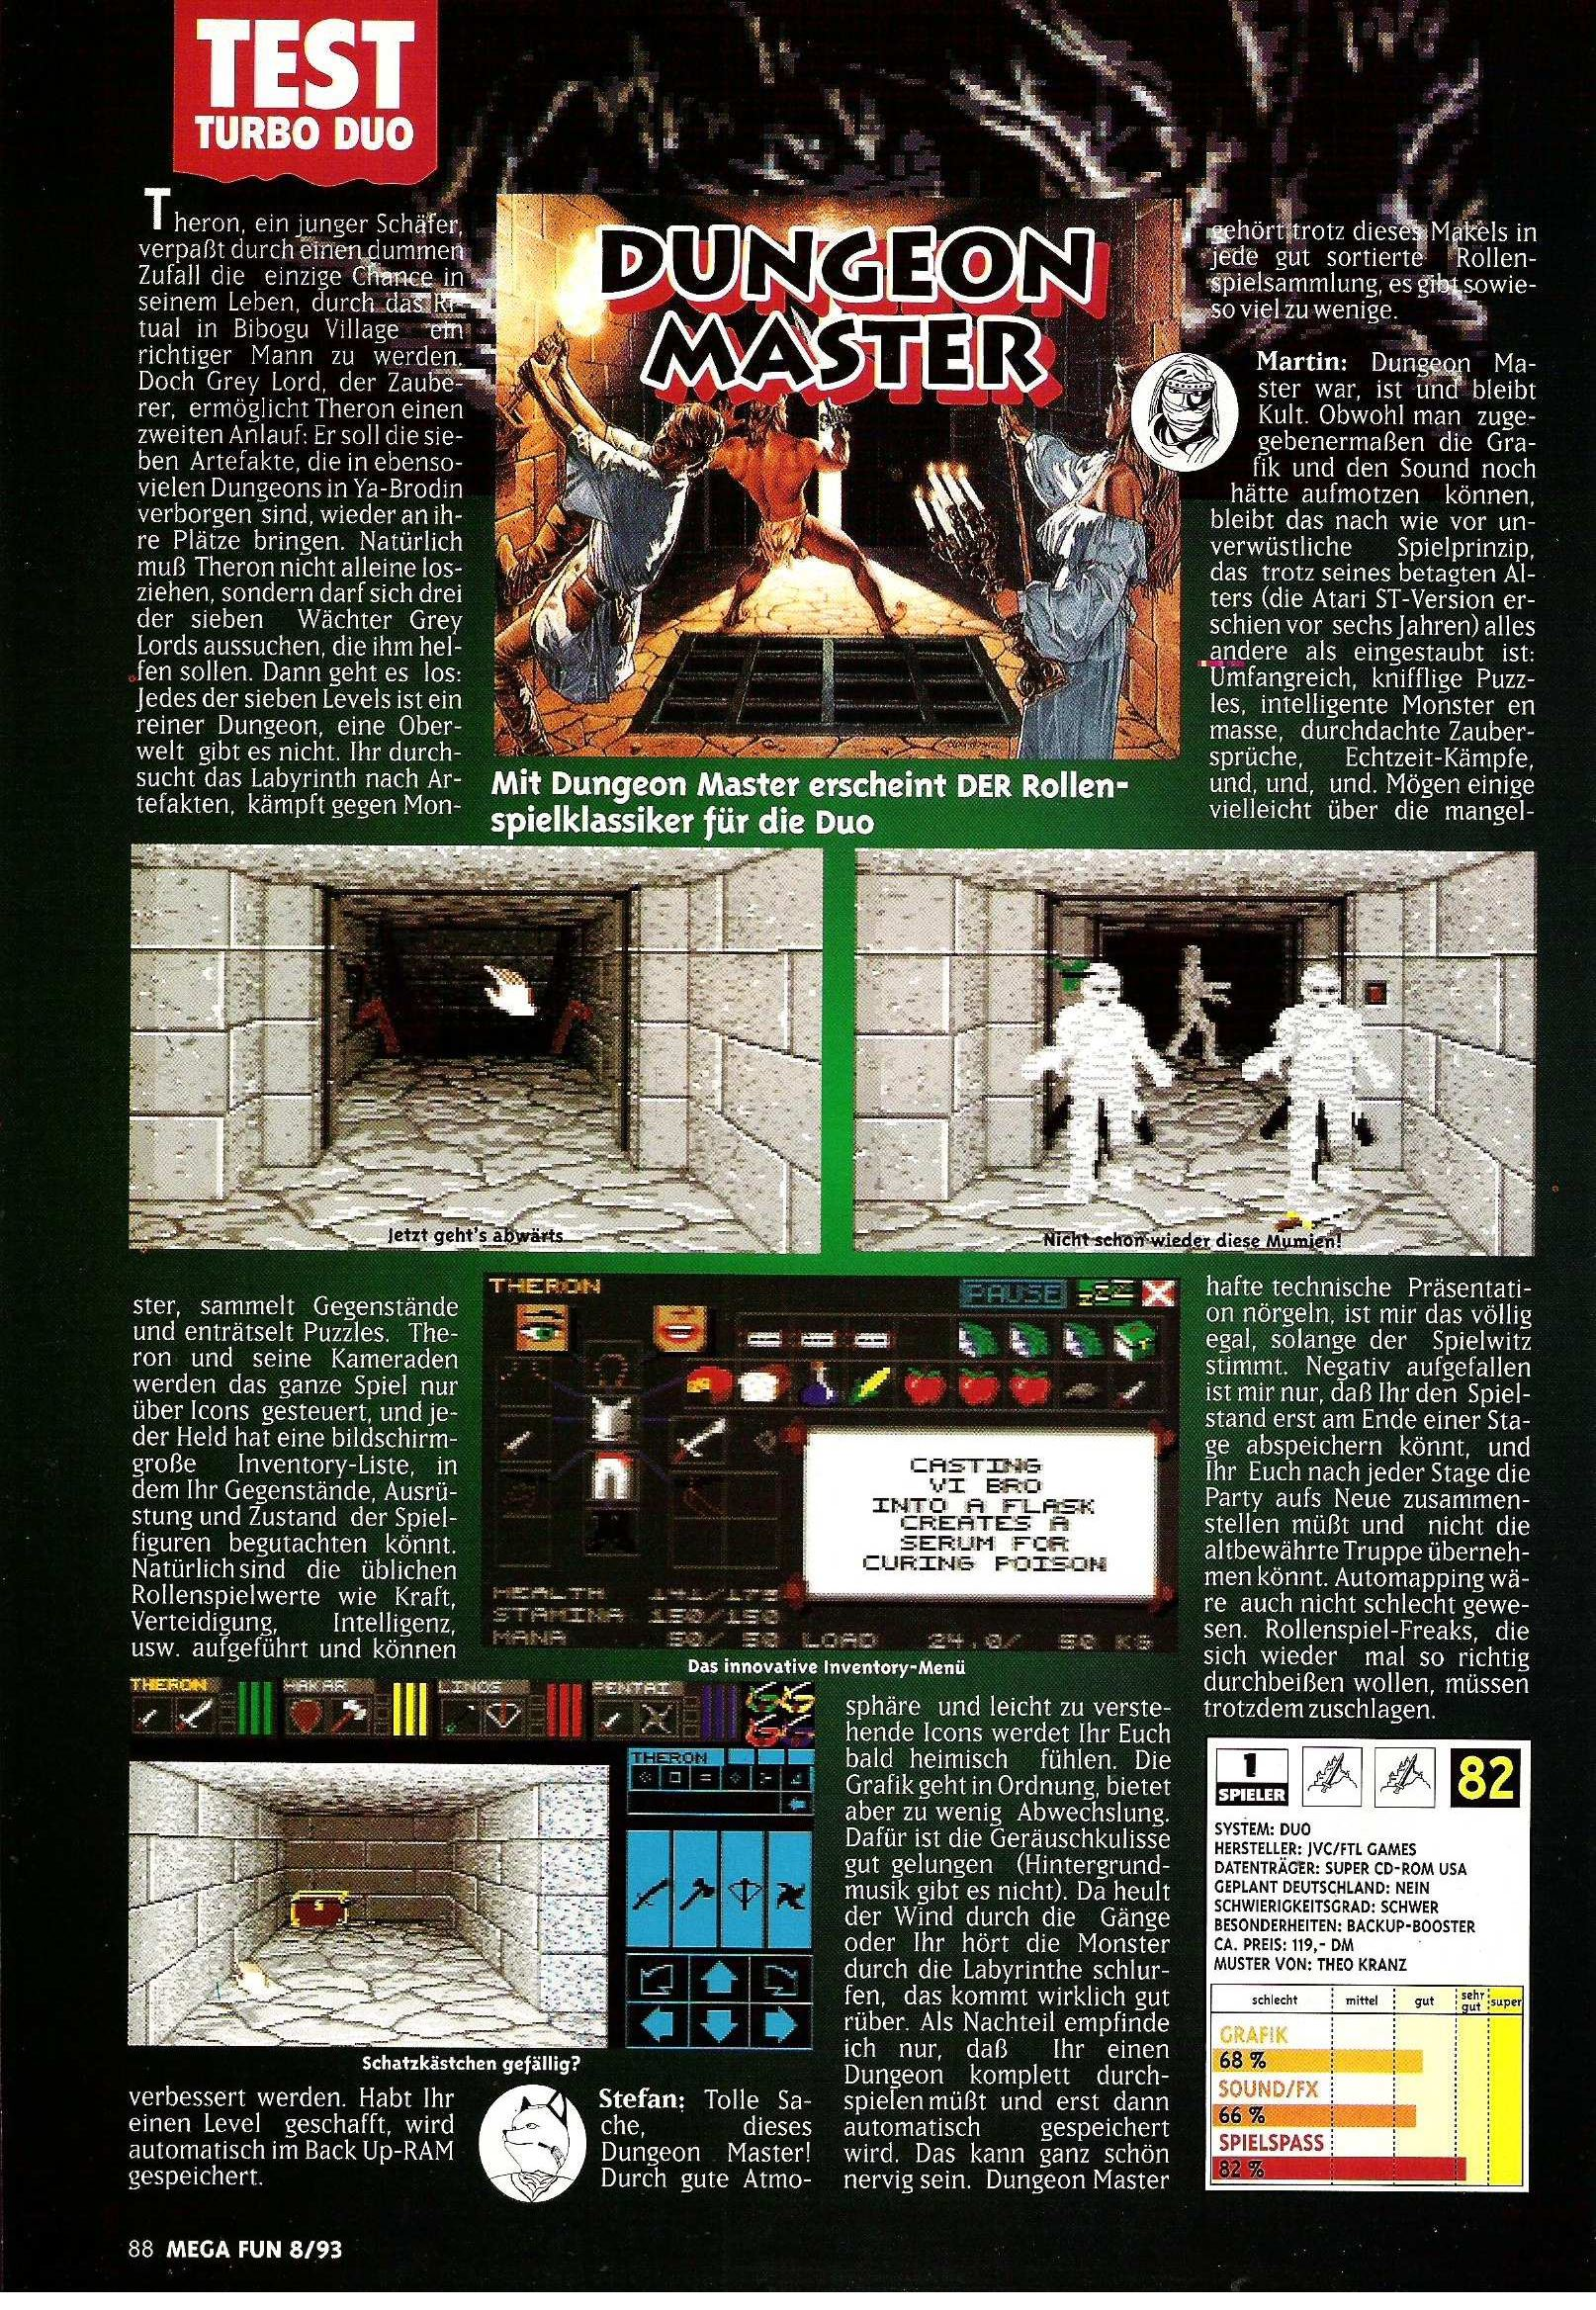 Theron's Quest for Turbografx Review published in German magazine 'Mega Fun', August 1993, Page 88